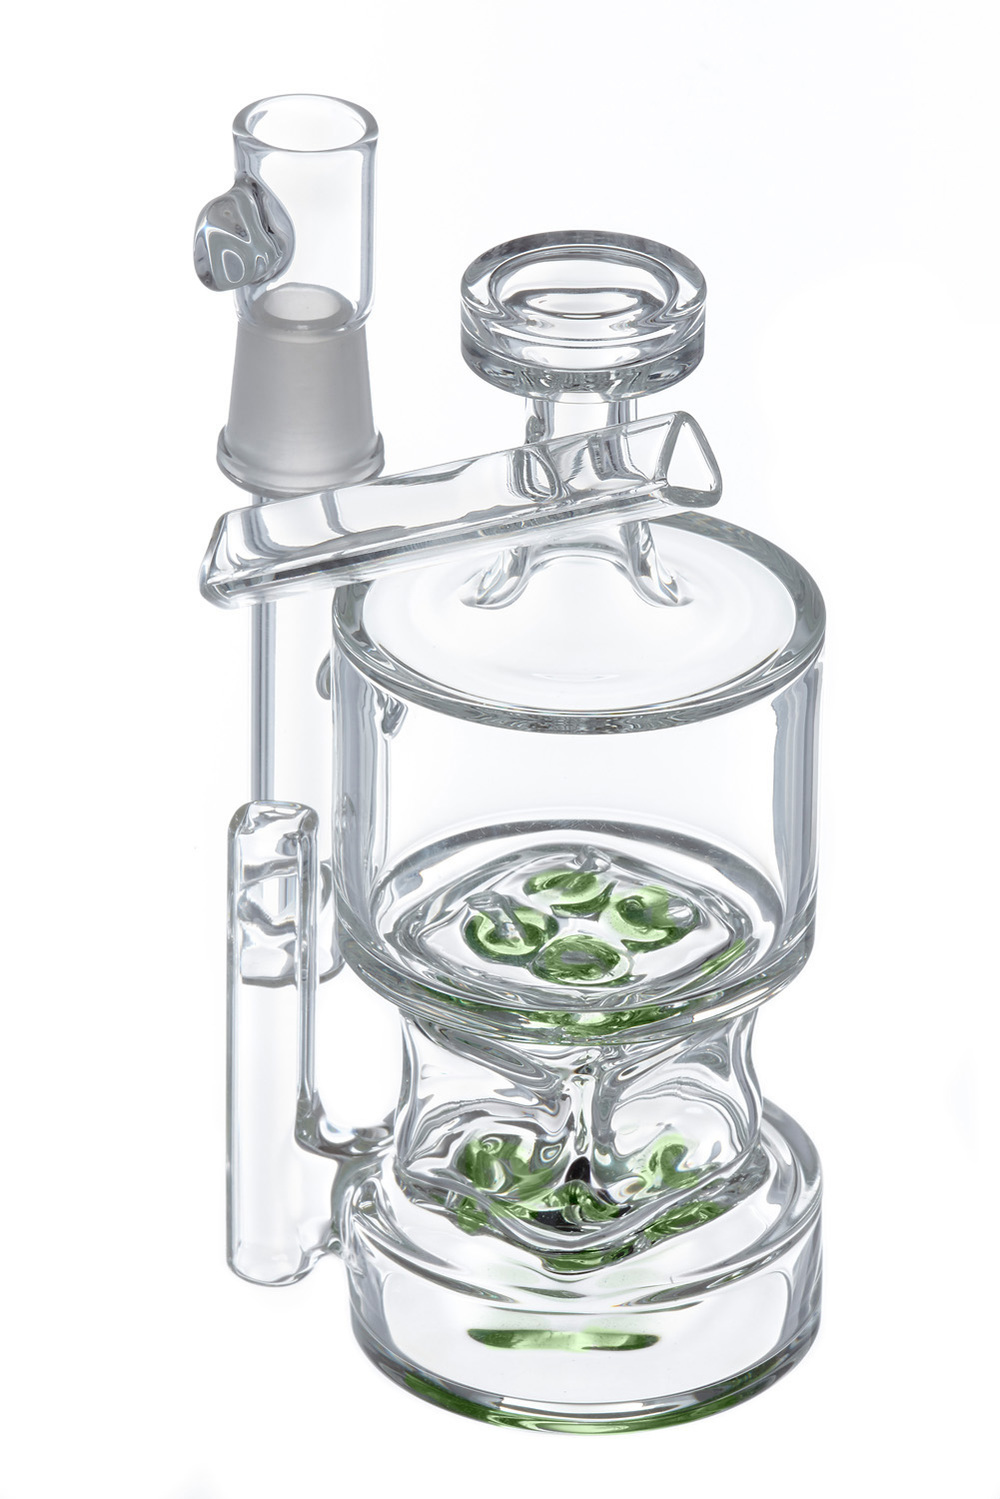 Hamms' Waterworks glass Bubbler with green on a white background. photographed by eugene glass photographer john higby